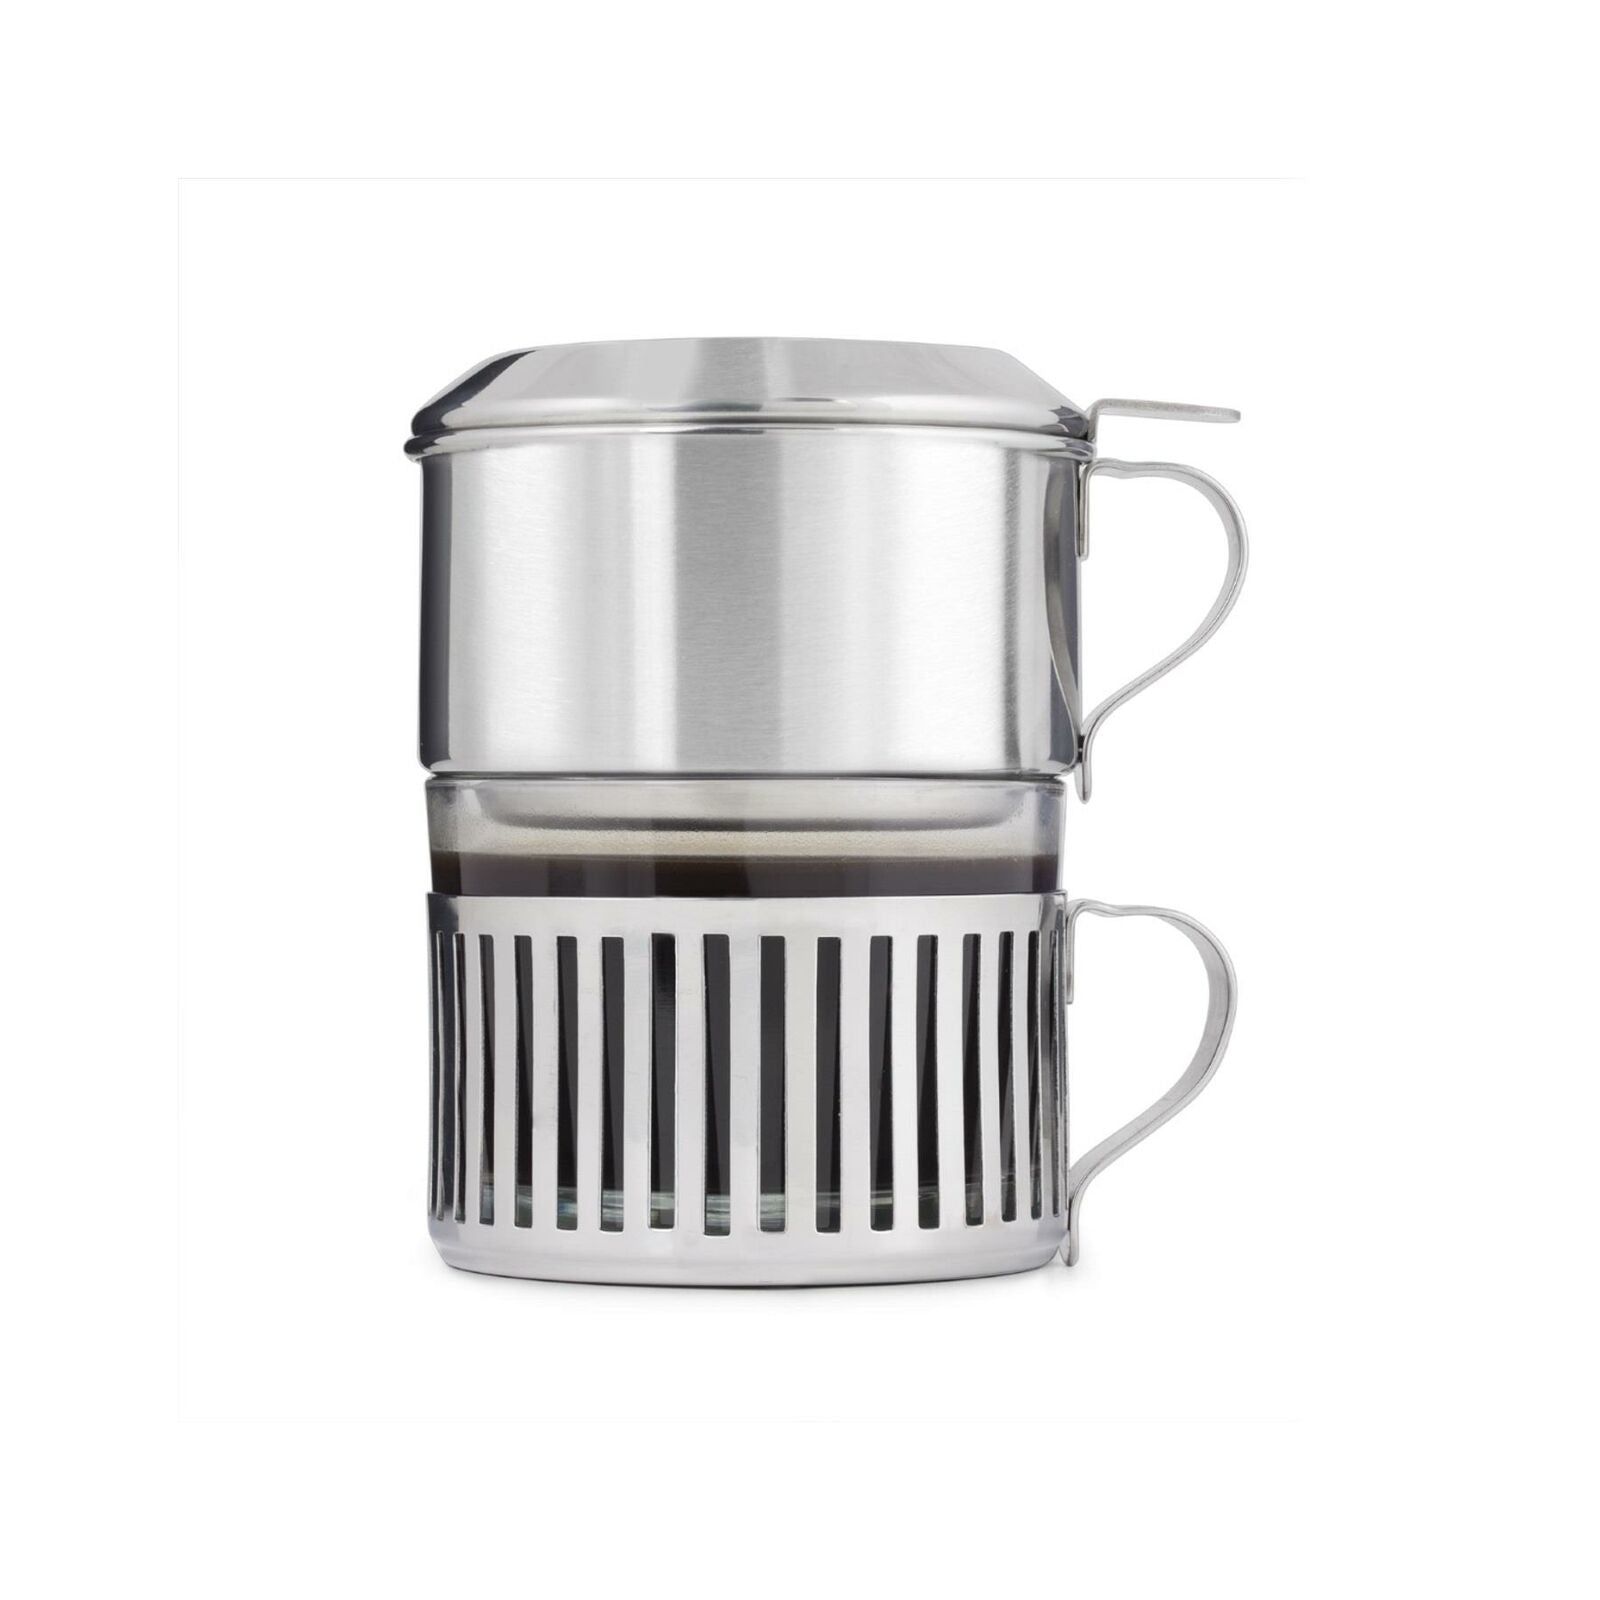 Kikkerland Vietnamese Coffee Maker